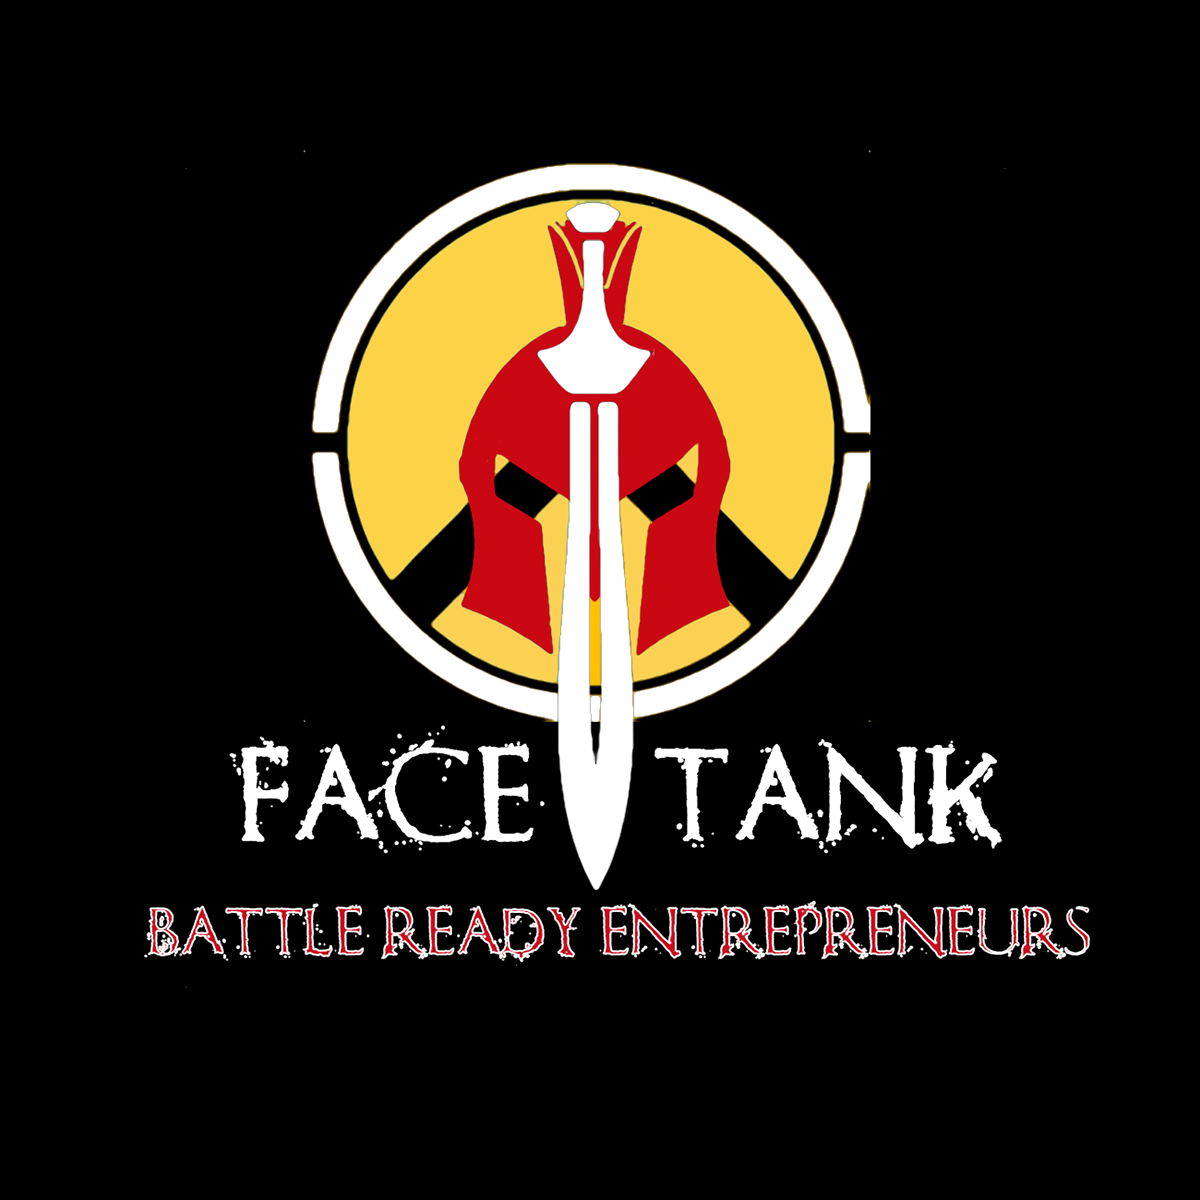 facetank logo designed by bluclay